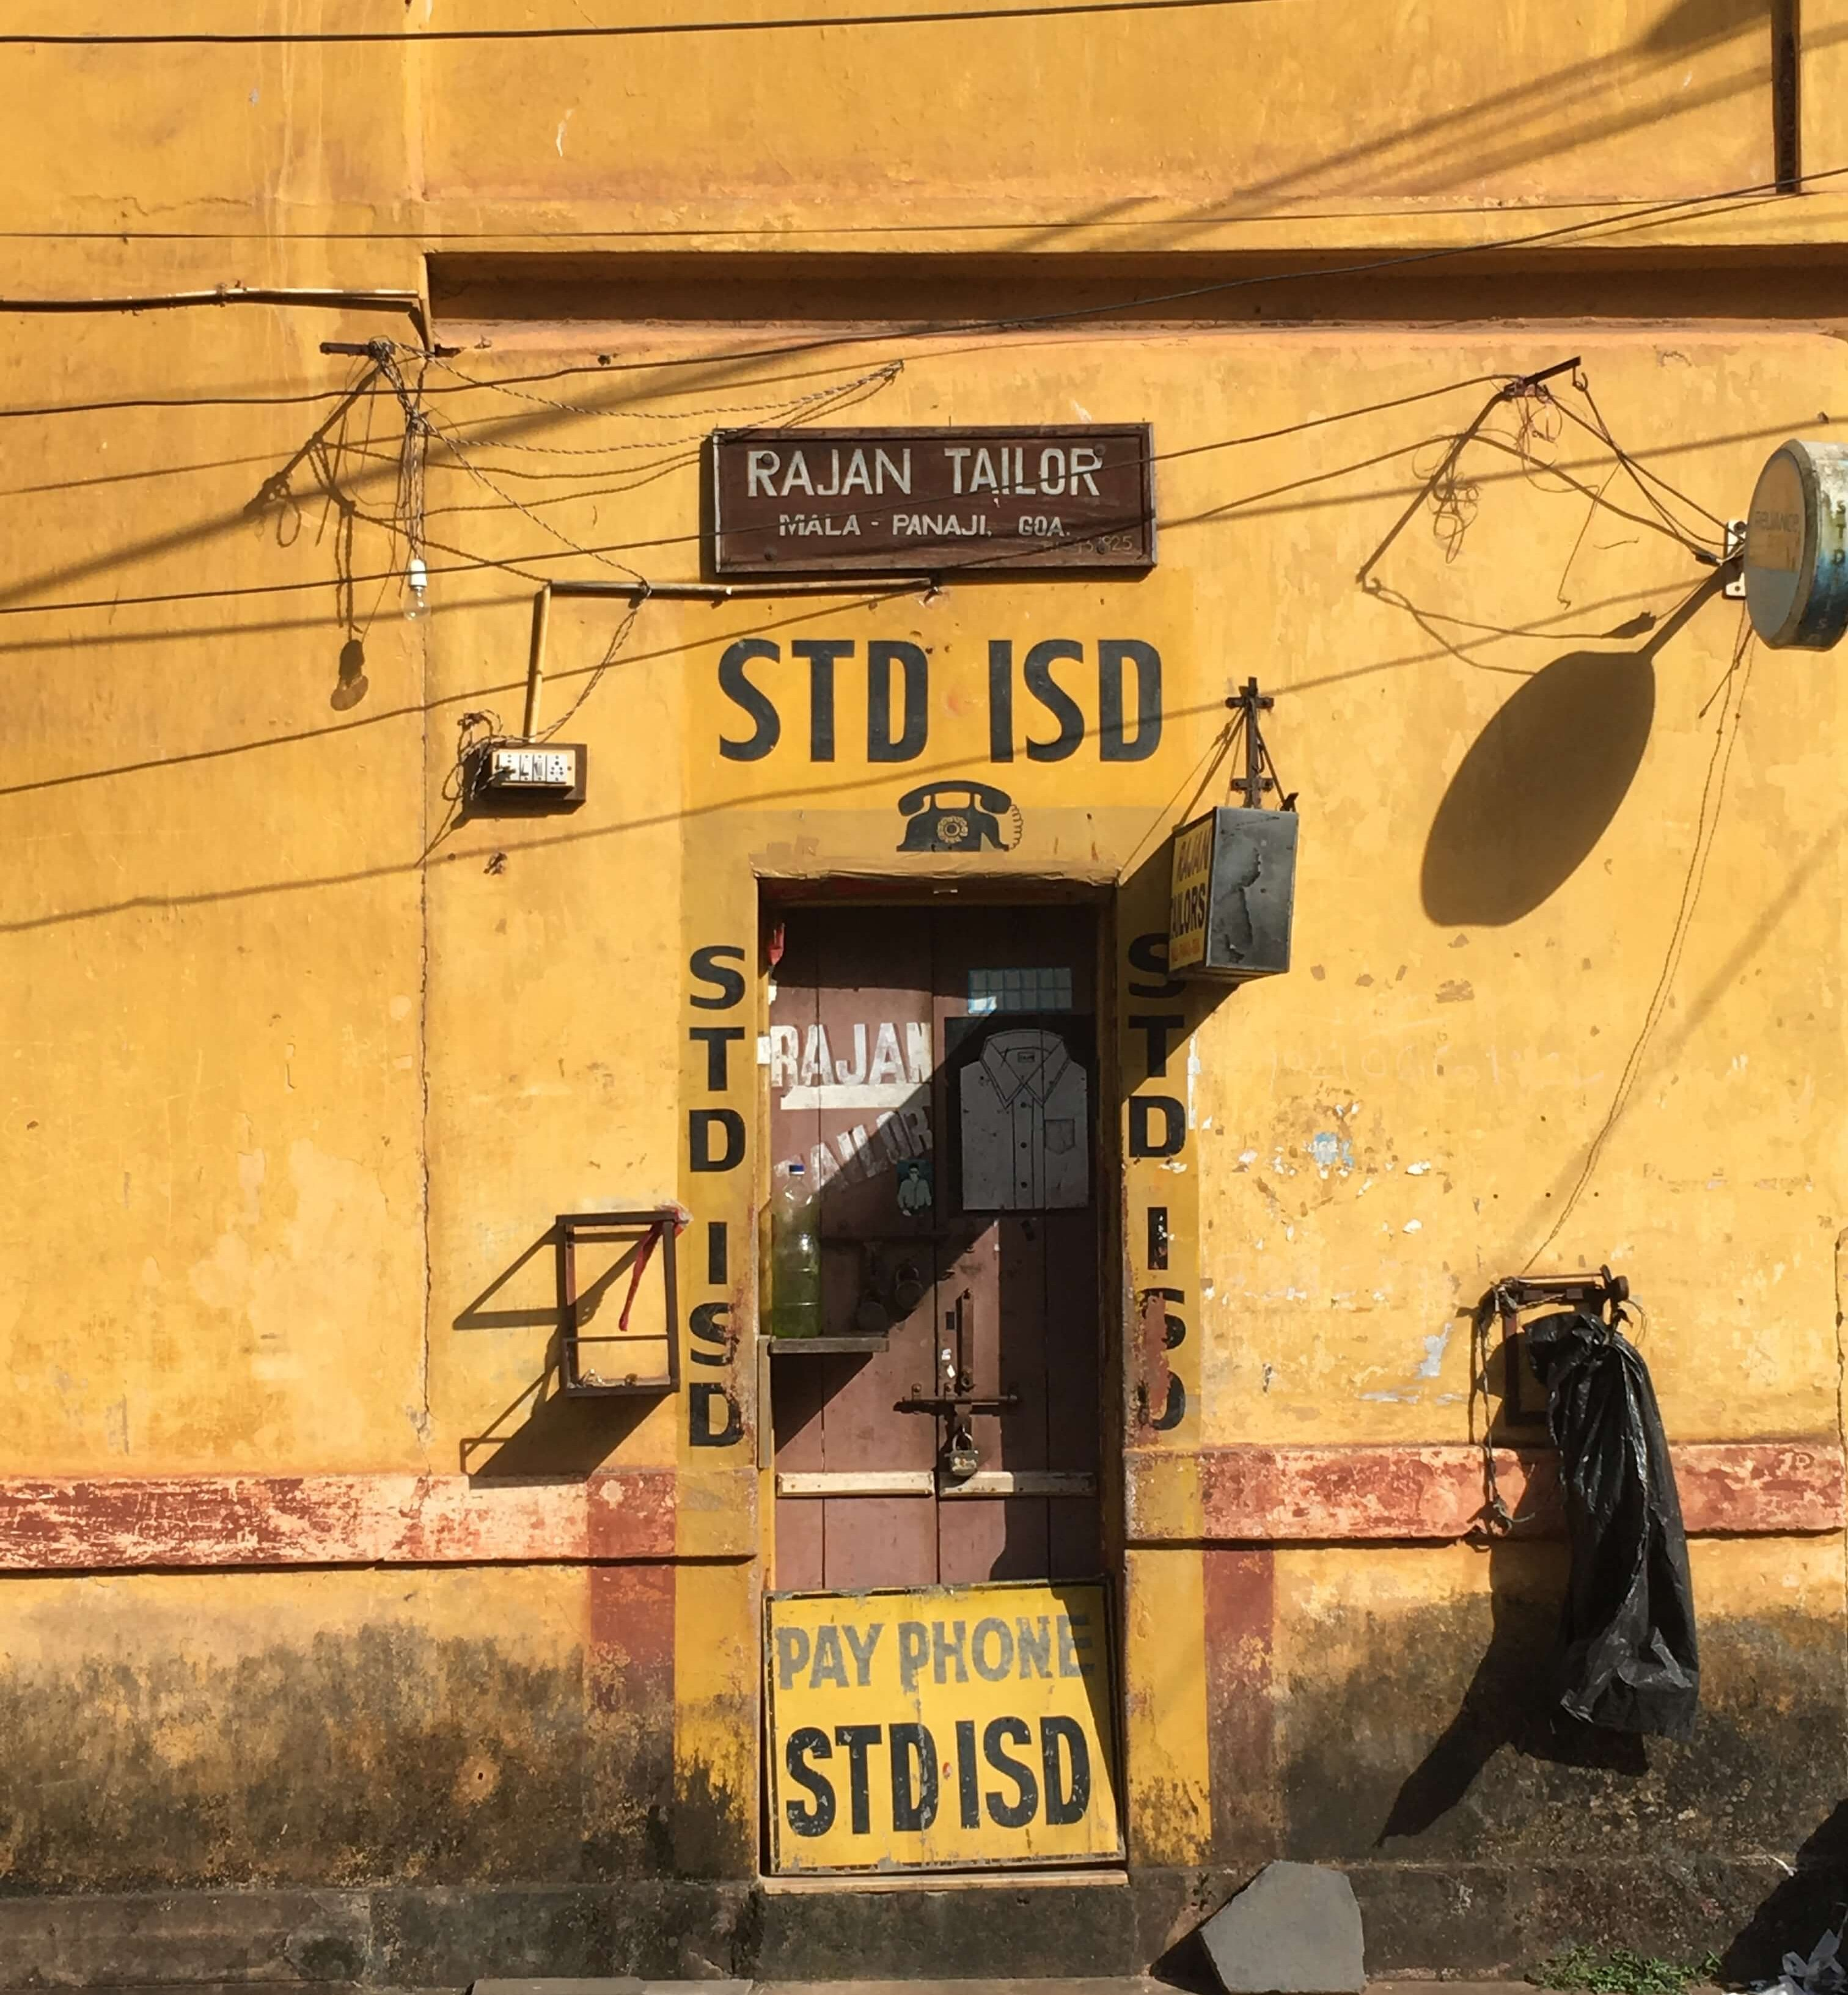 Tailor and pay phone in a yellow building in Panaji, Goa